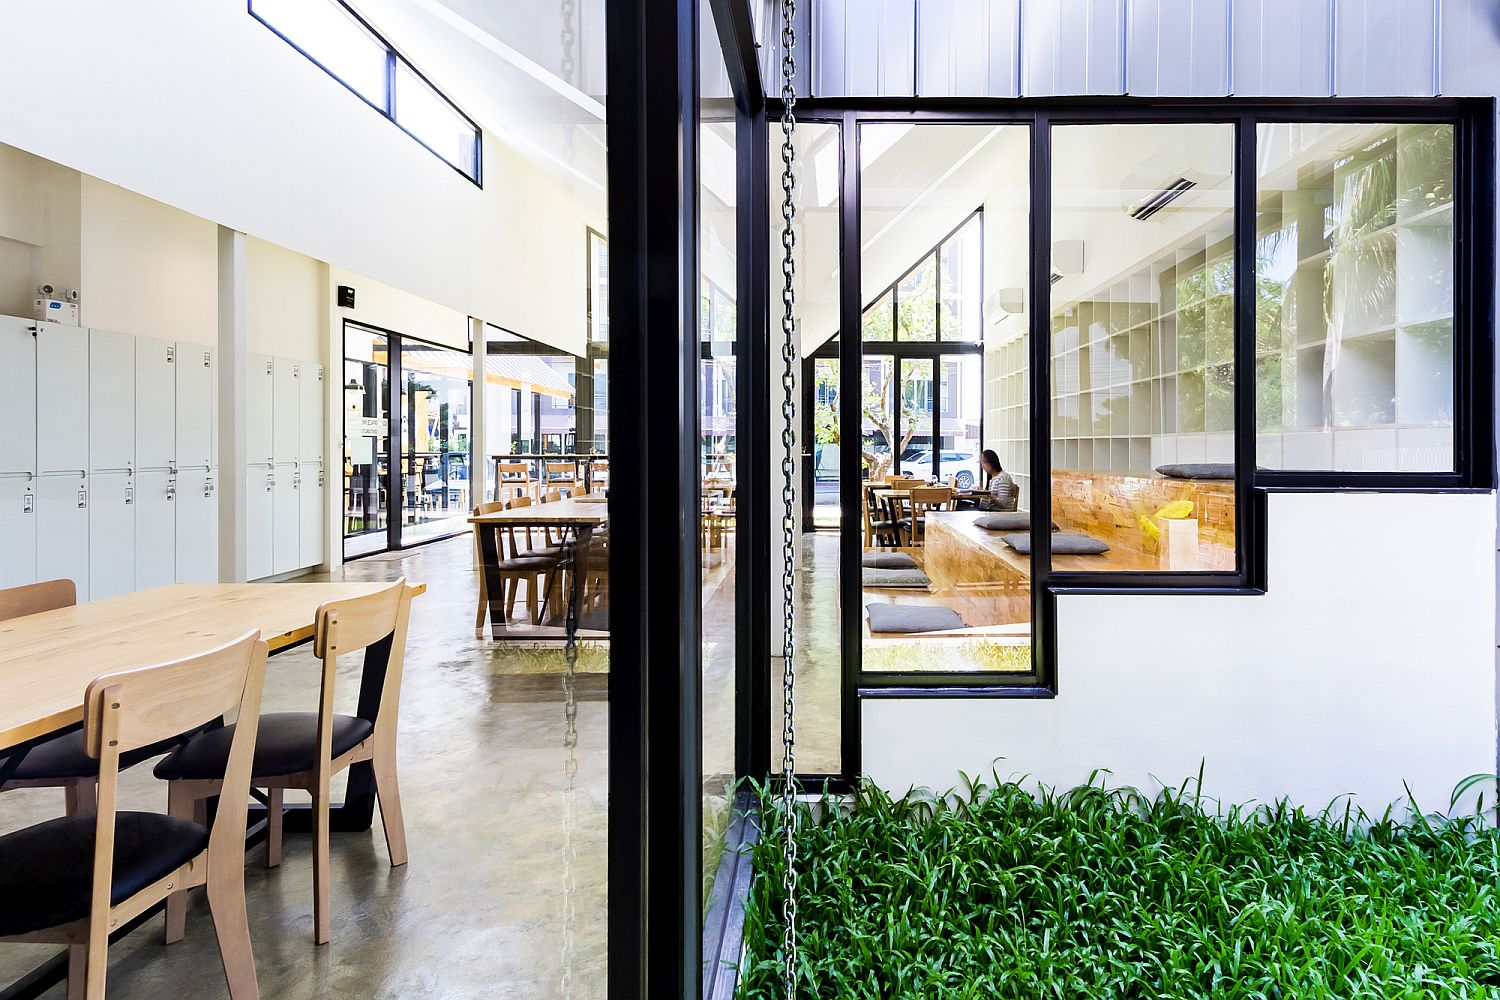 Garden area brings greenery to Code Space